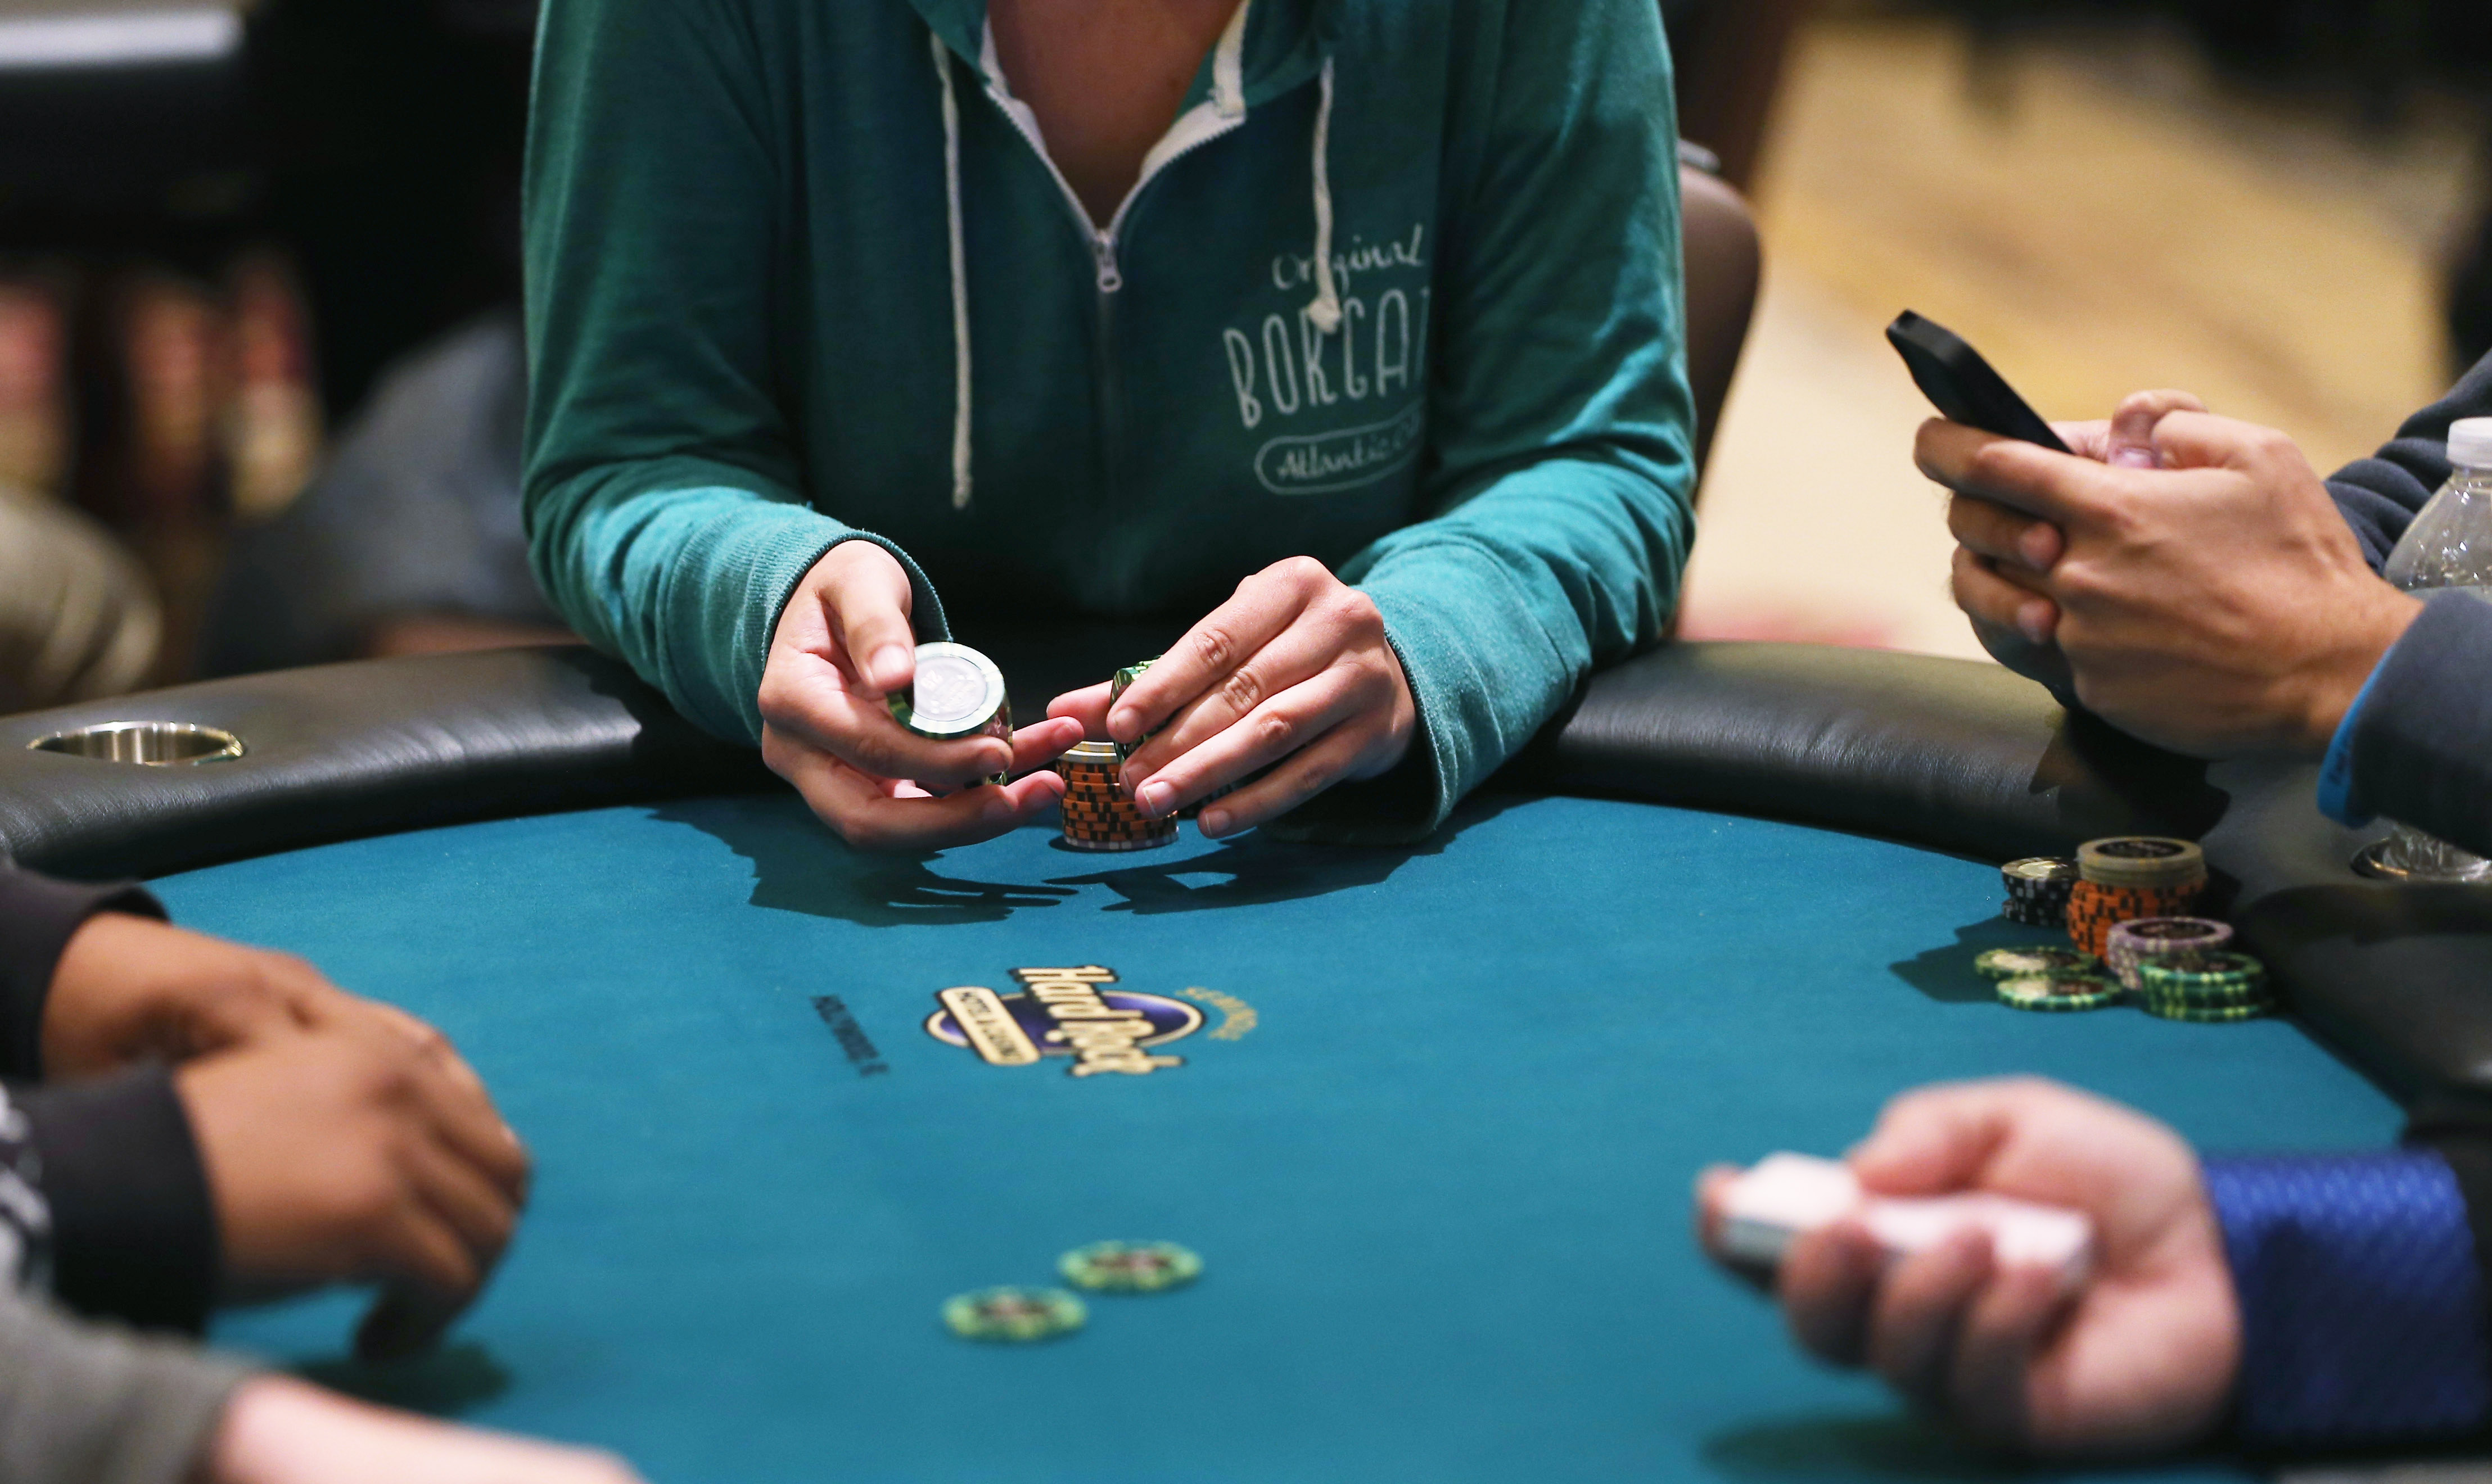 A poker player holds a chip